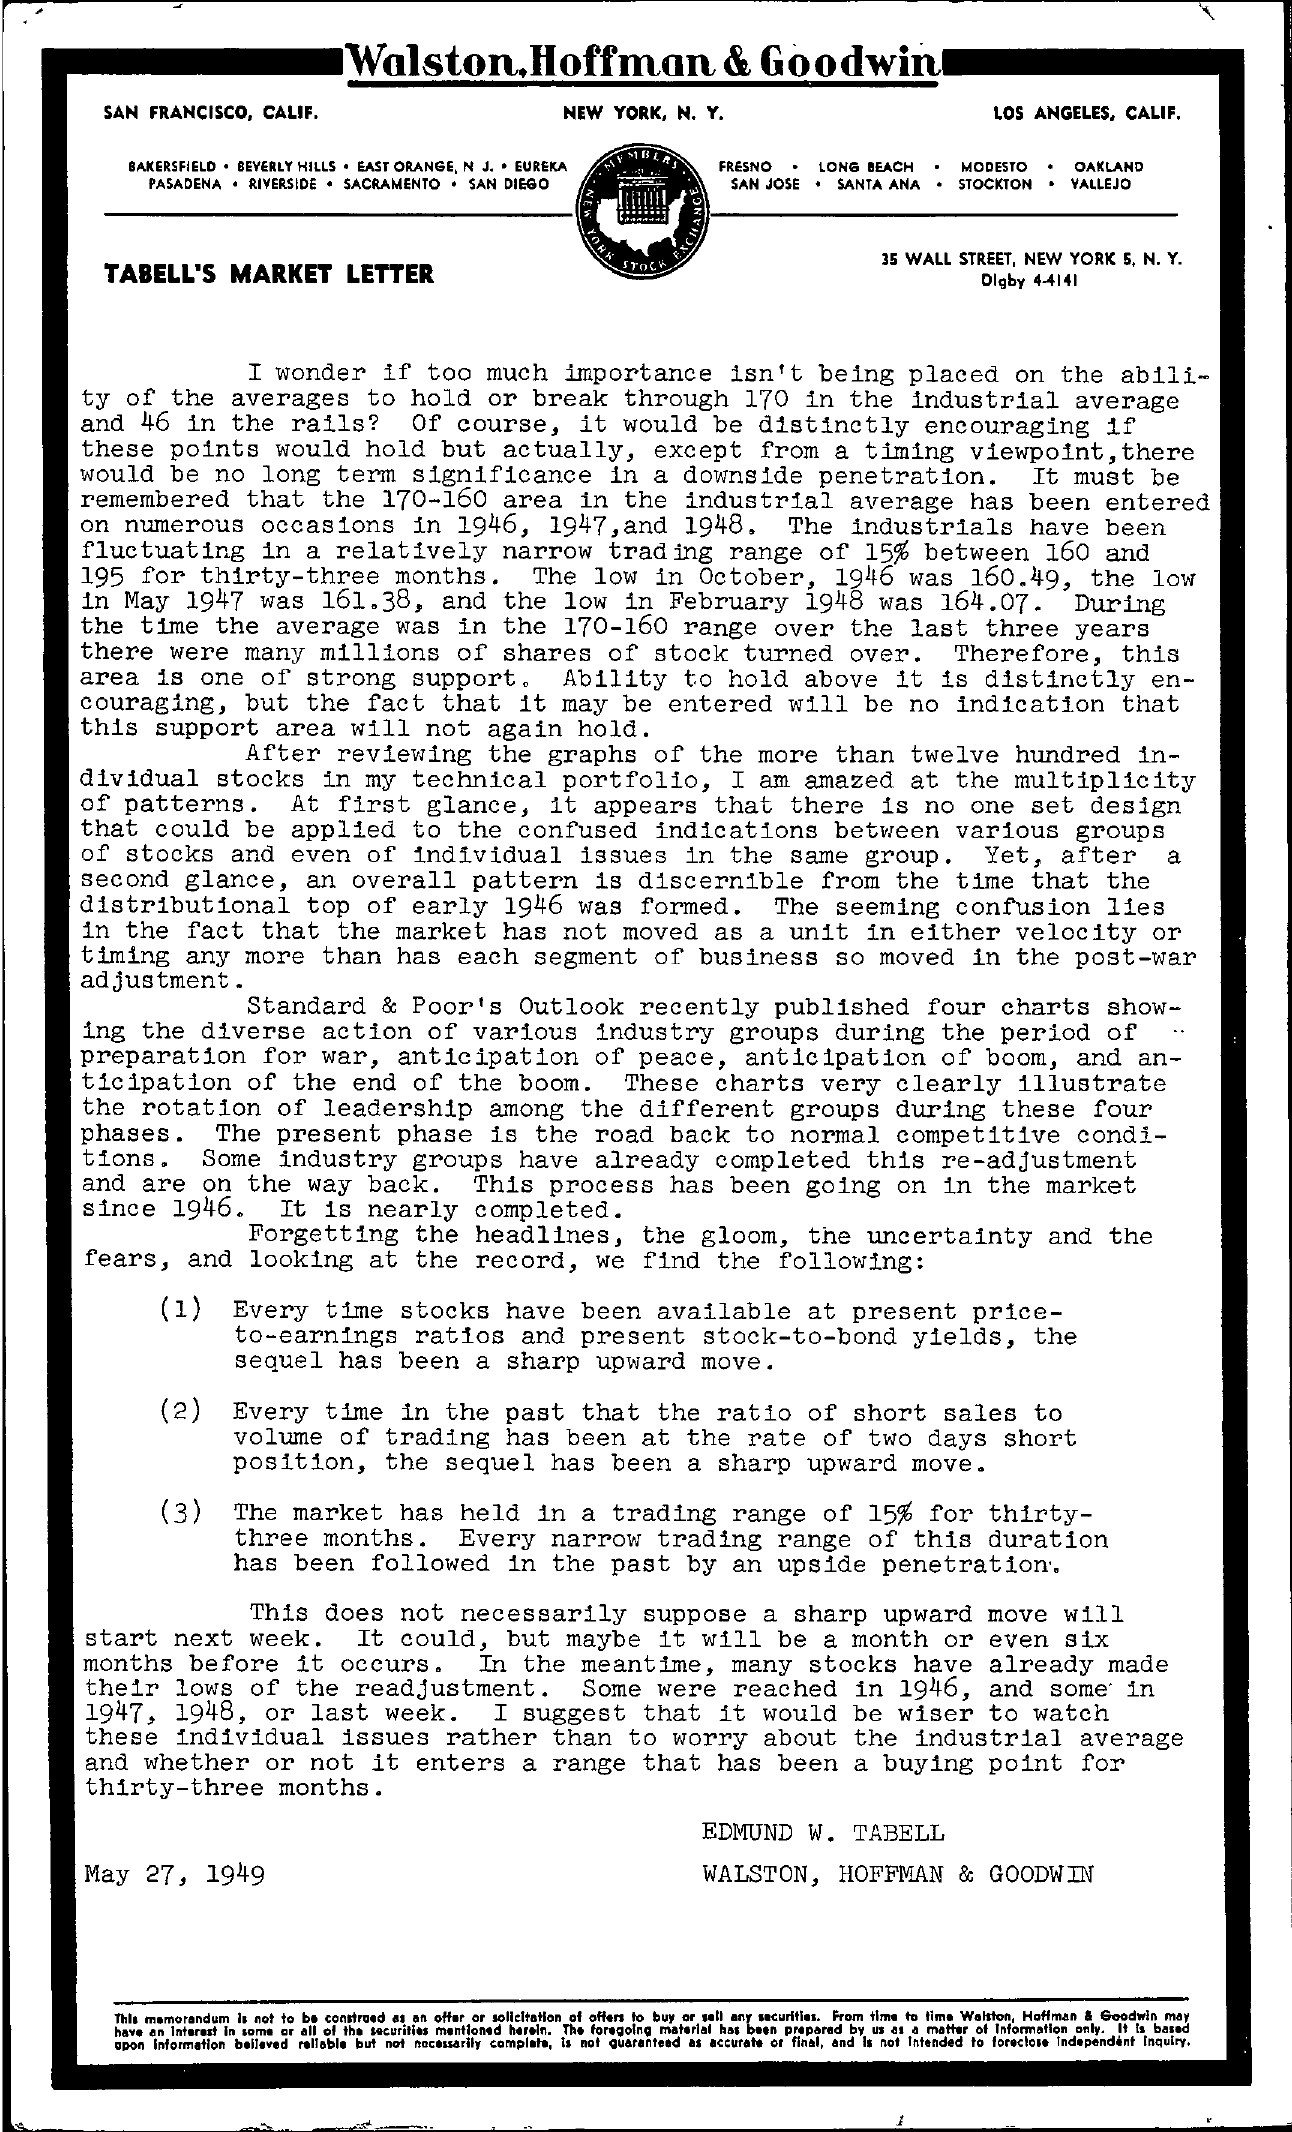 Tabell's Market Letter - May 27, 1949